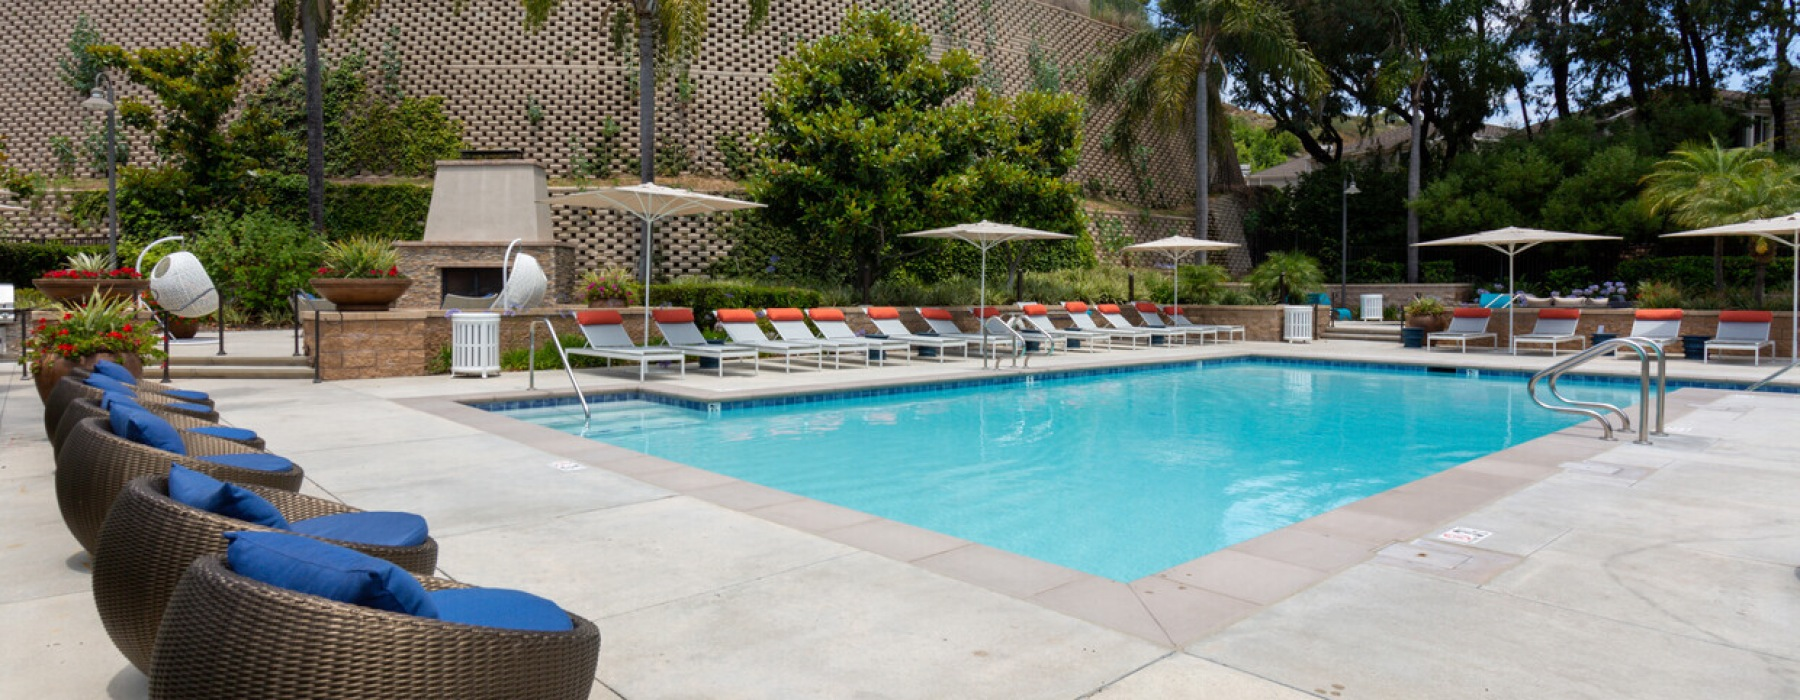 spacious pool with ample seating